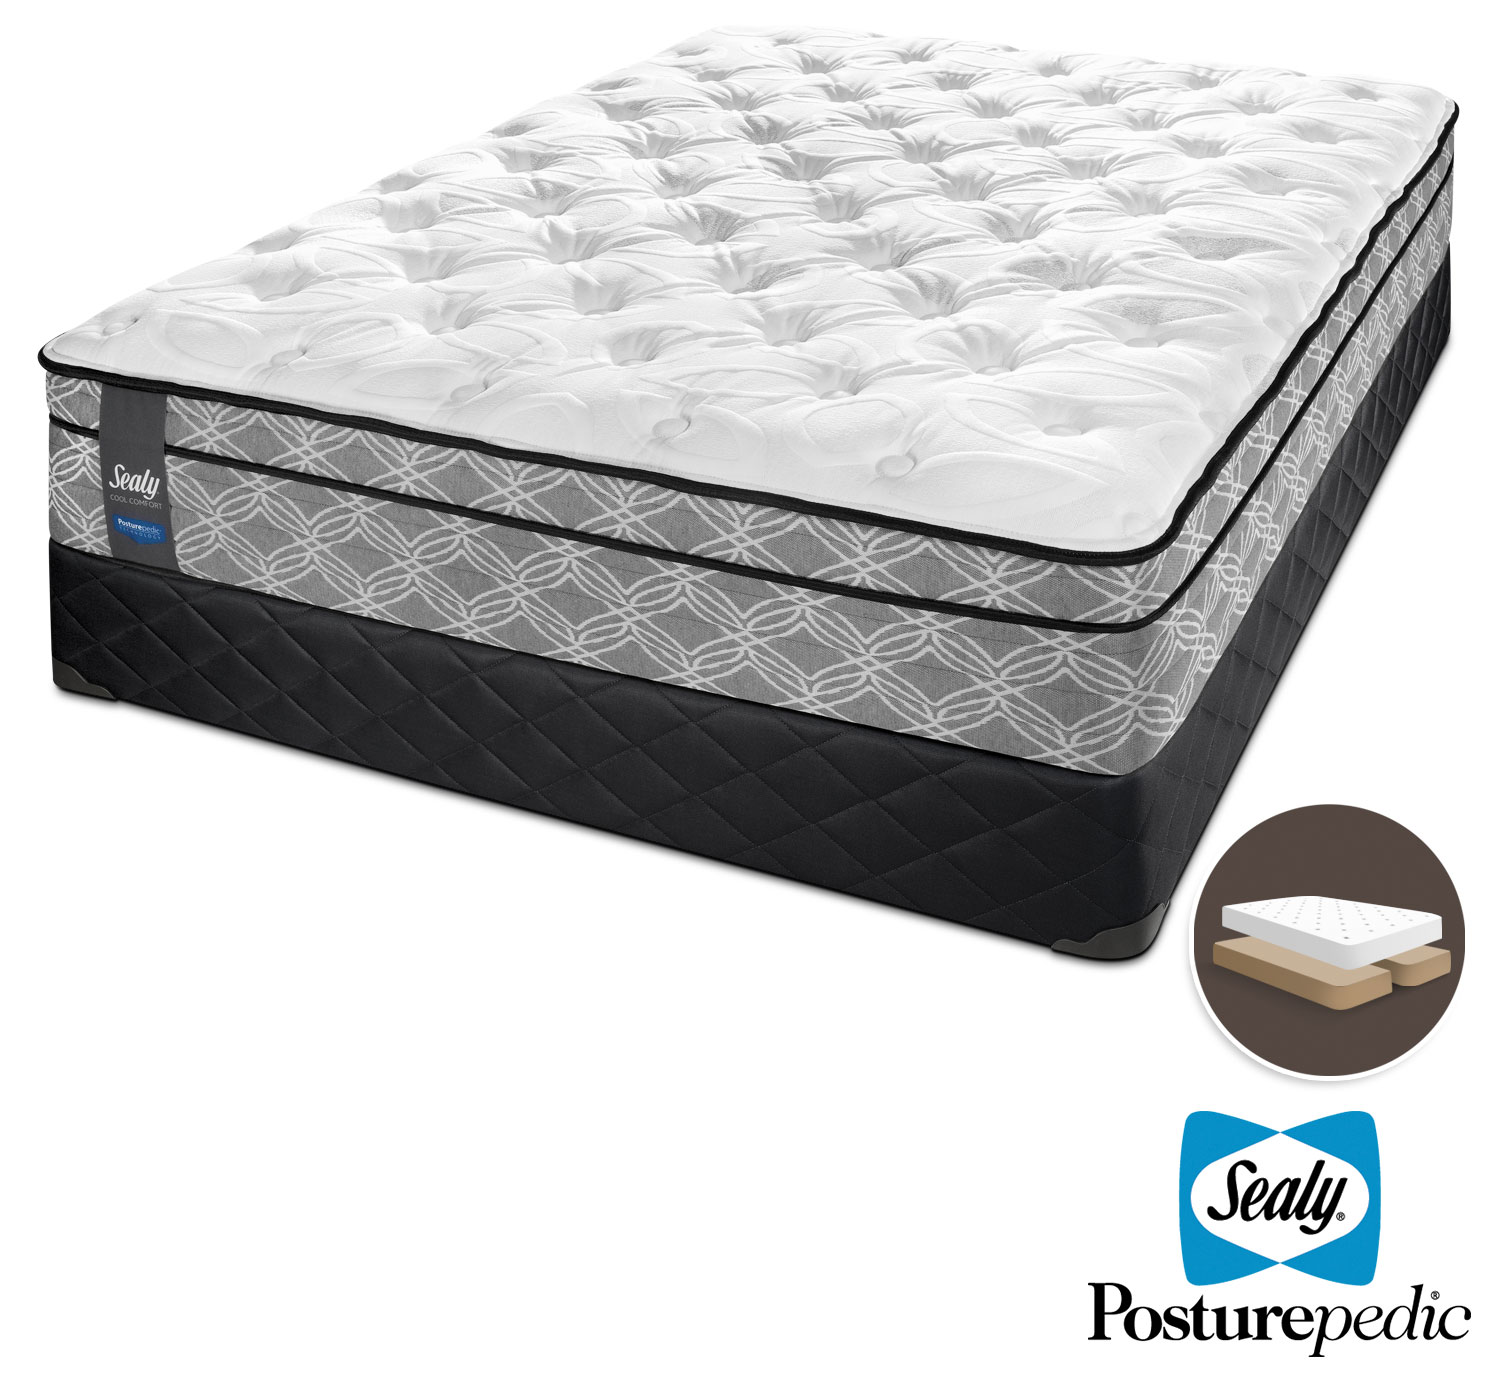 Sealy moonshade plush queen mattress and split boxspring set leon 39 s Queen bed and mattress